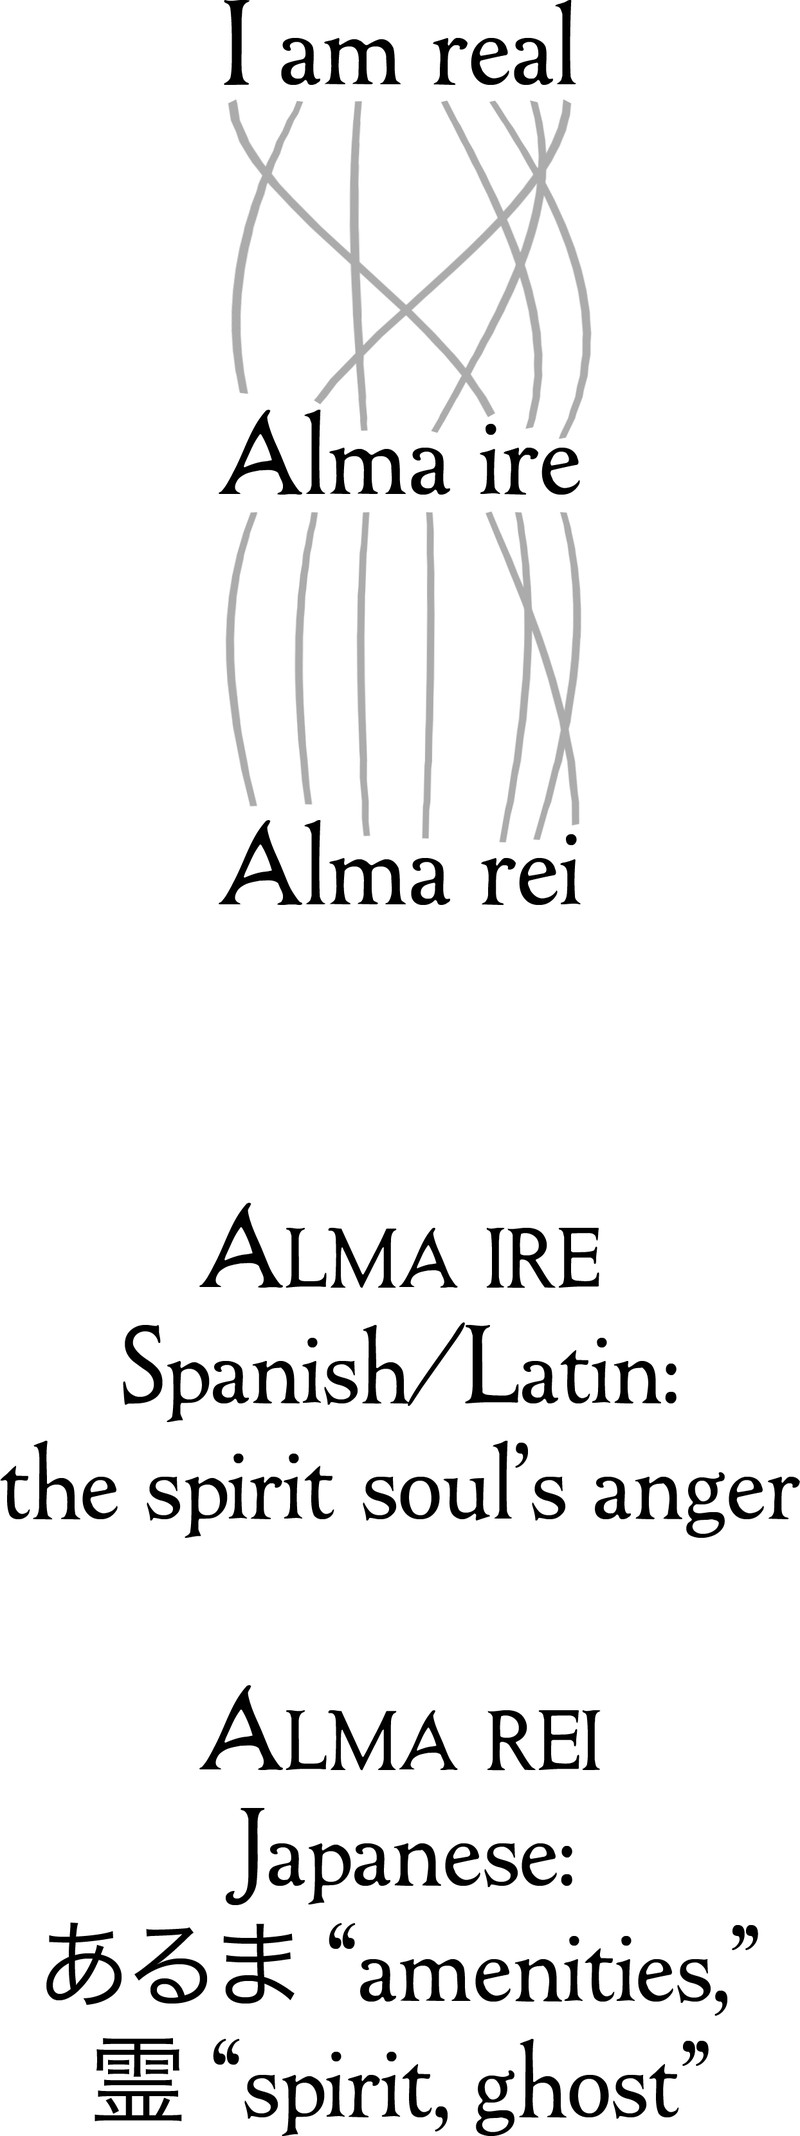 hight resolution of the spanish latin alma ire refers to the spirit soul s righteous anger in japanese alma rei refers to a ghost s amenities or useful features